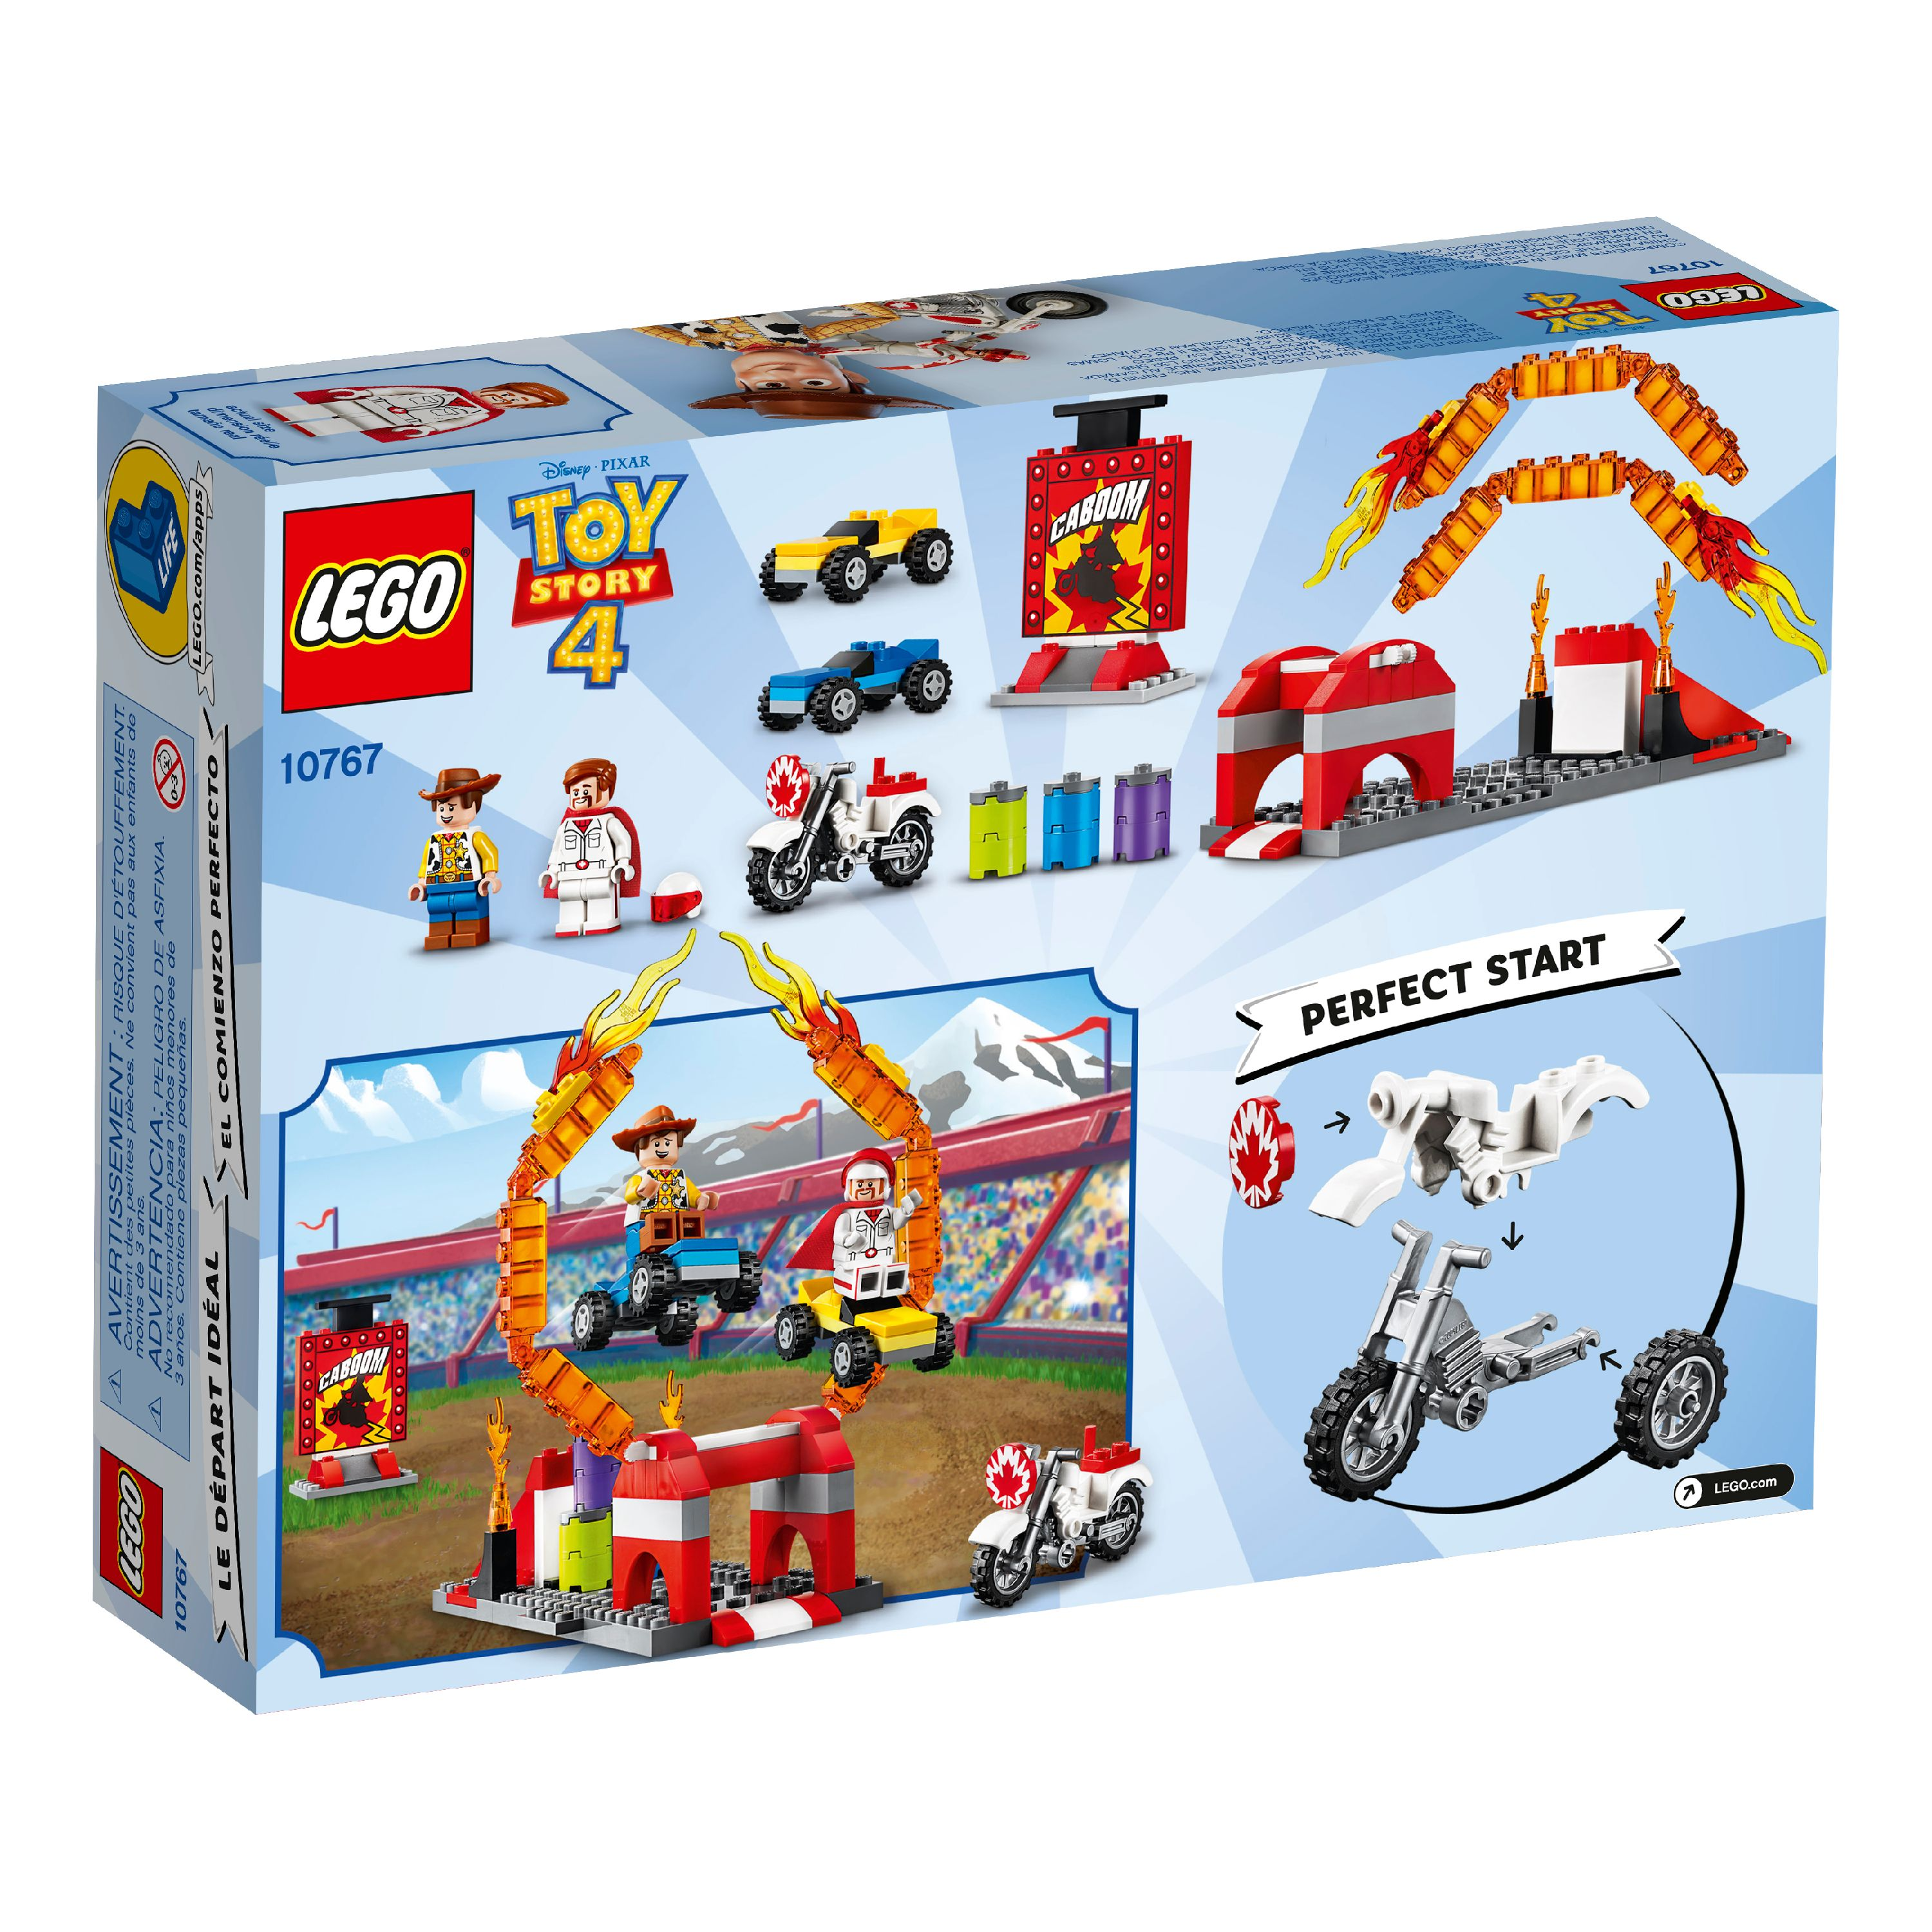 120 Pieces LEGO Disney Pixar/'s Toy Story Duke Caboom/'s Stunt Show 10767 Building Kit